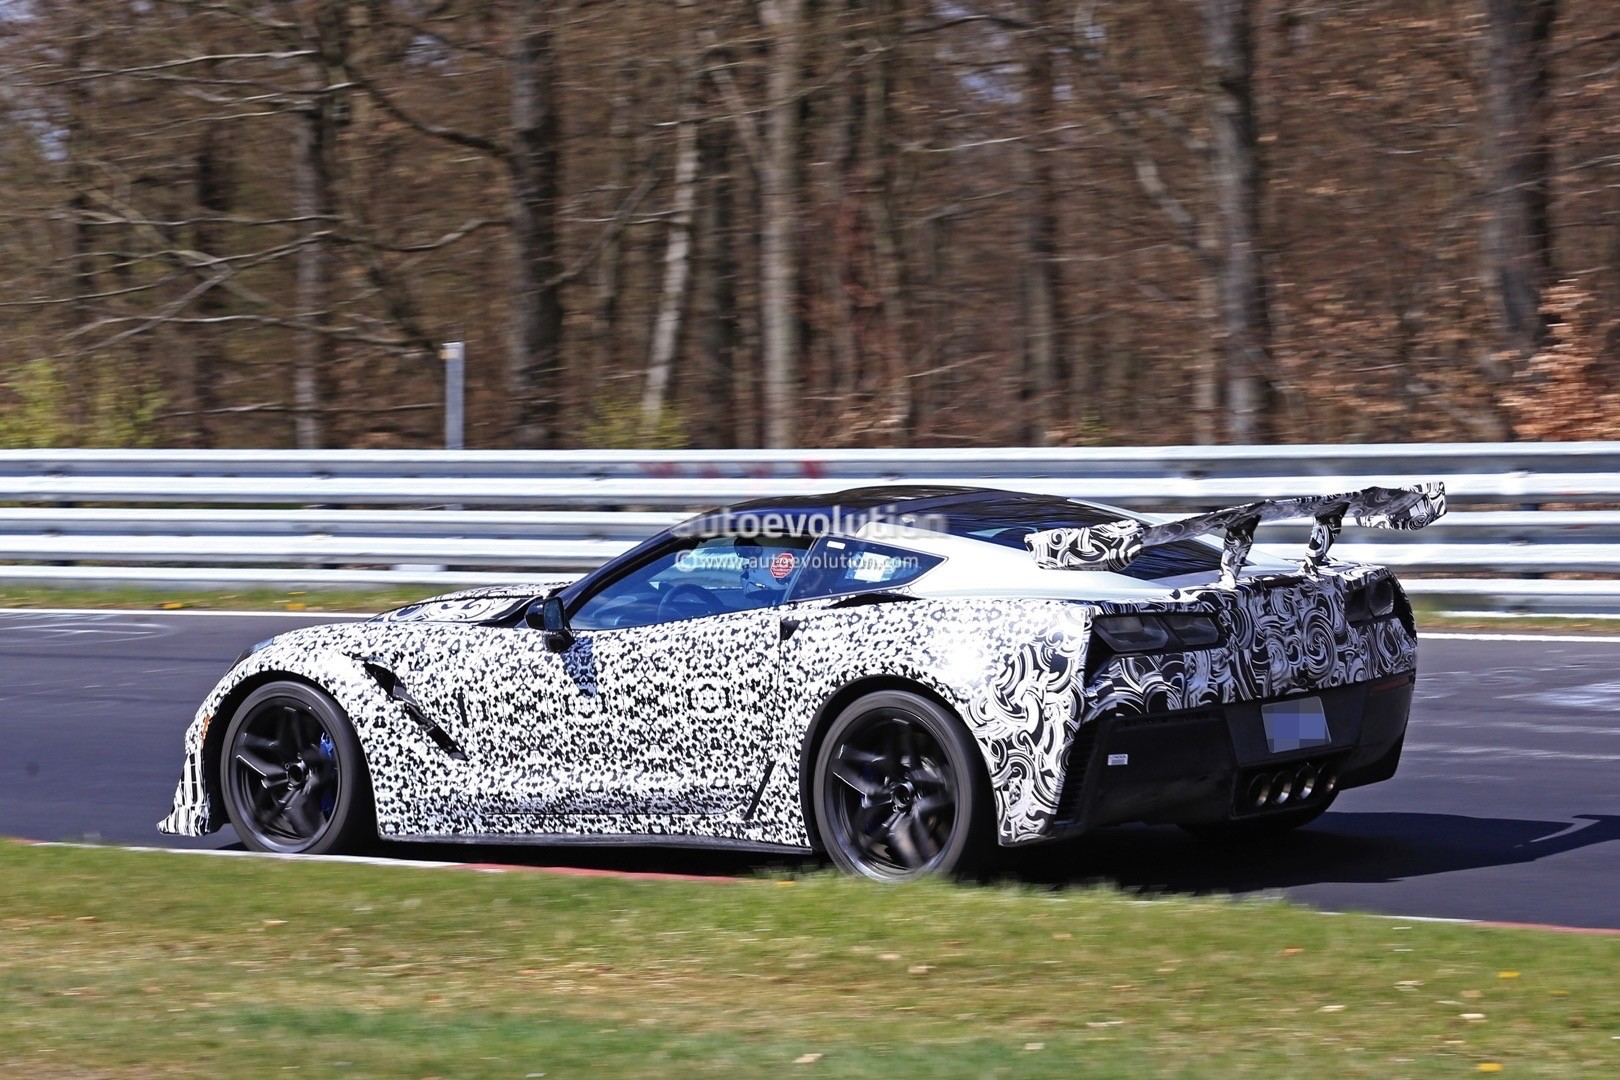 2018 Corvette Zr1 Confirmed With Supercharged Lt5 V8 Engine Autoevolution